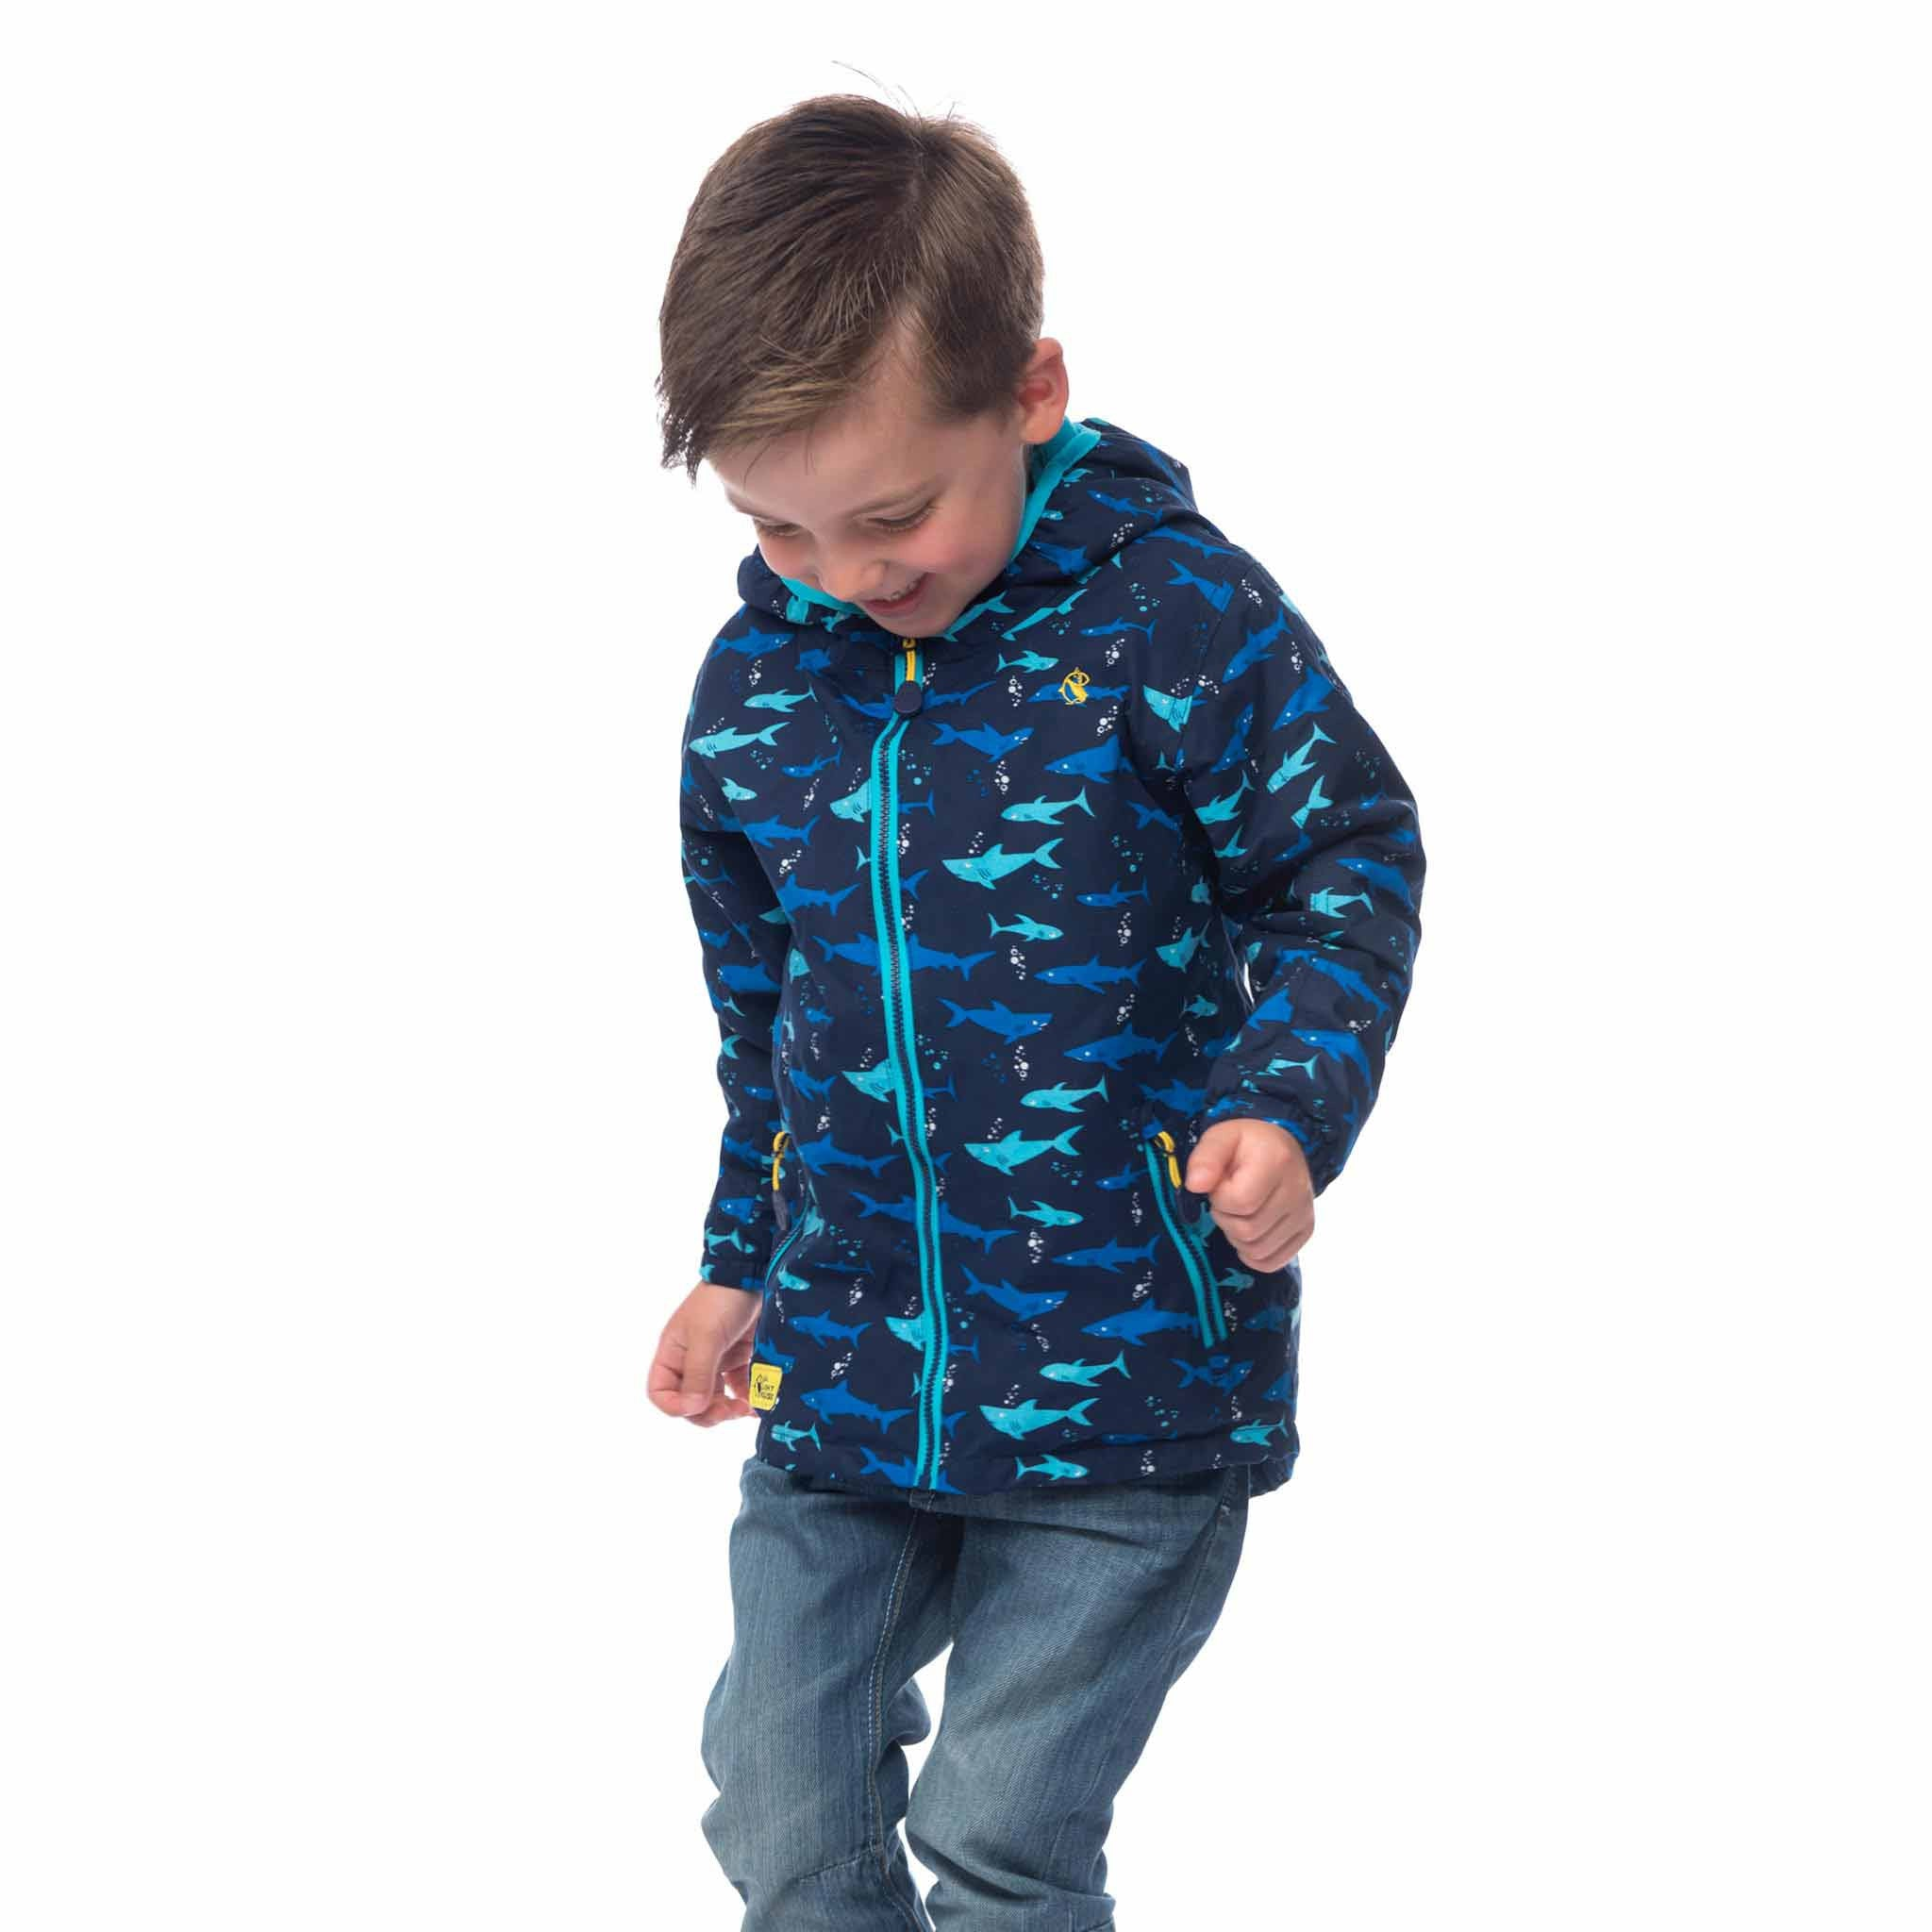 Lighthouse Boys' Ollie Fleece Lined Waterproof Hooded Raincoat in Navy with Shark Print. Fully Zipped.